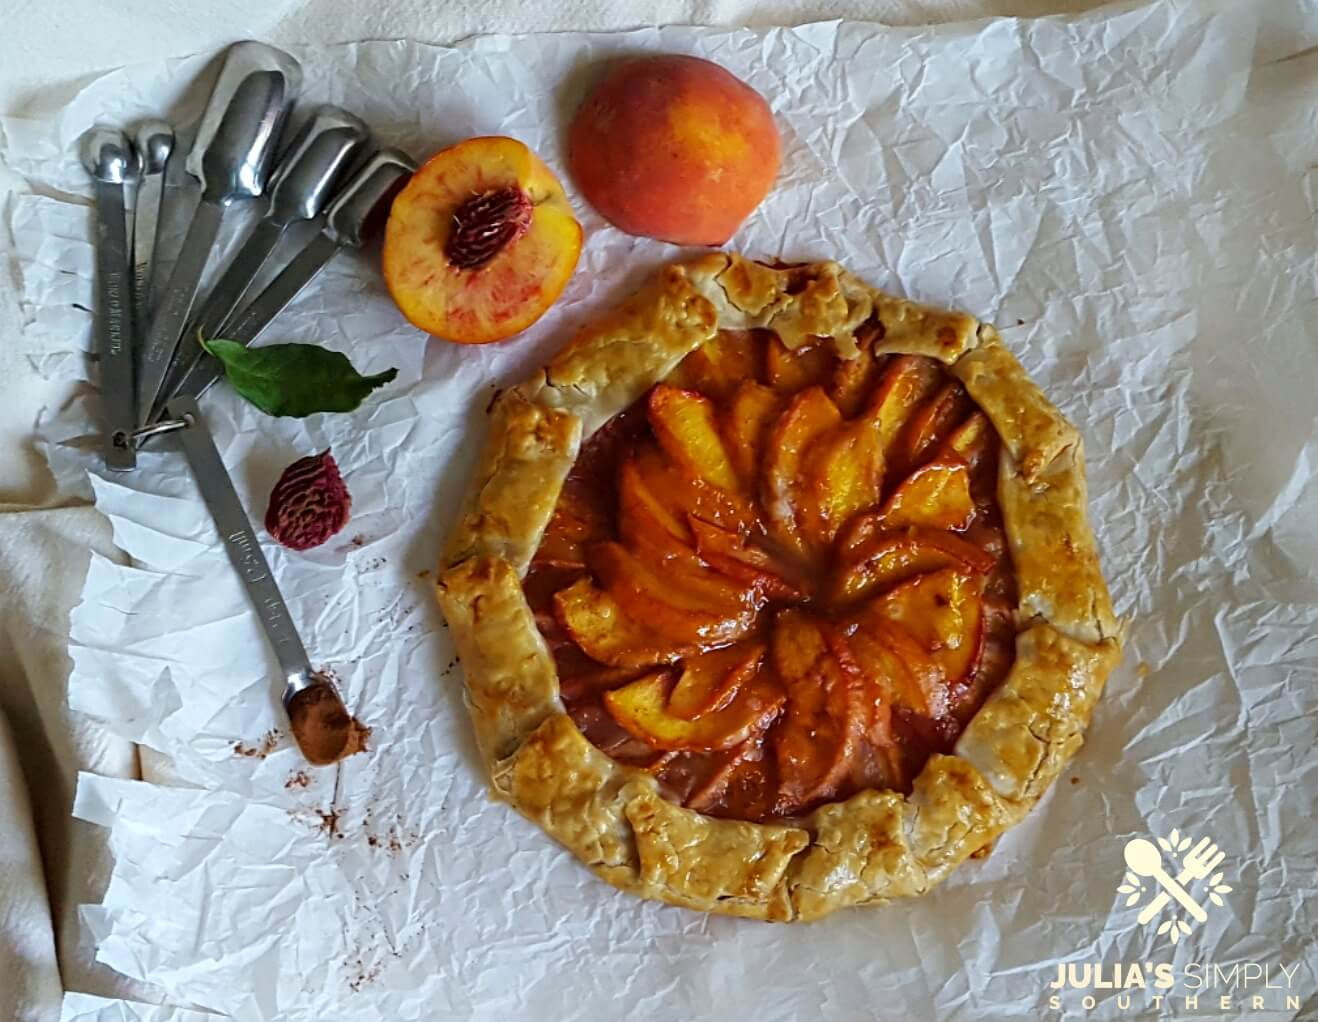 Easy dessert using fresh peaches - Peach Galette - Julia's Simply Southern